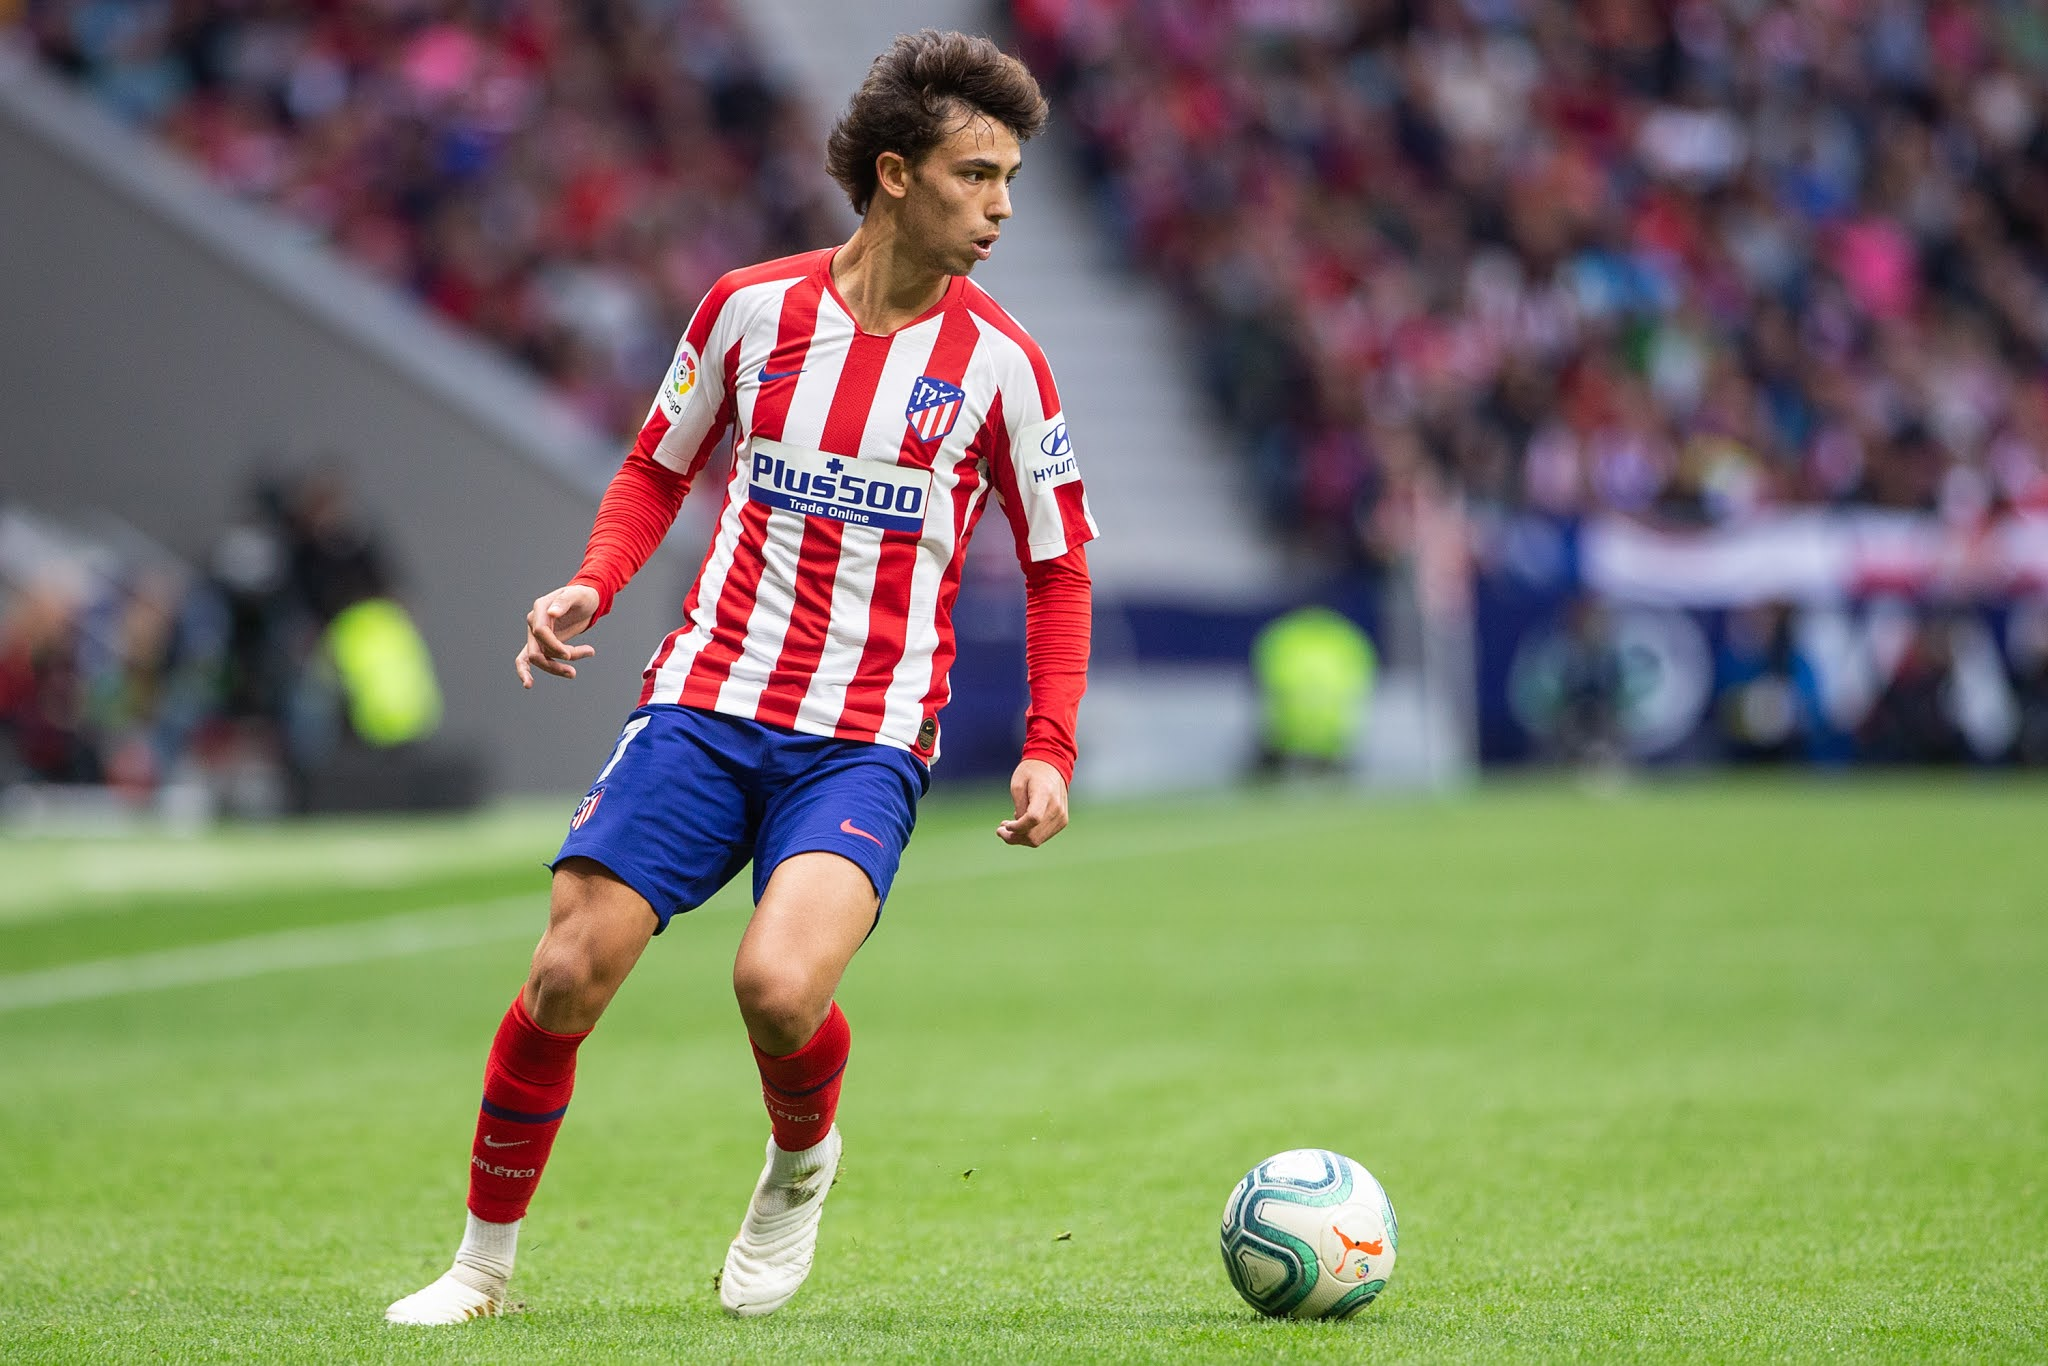 Atletico Madrid's wonderkid Joao Felix will have to step up in the absence of Luis Suarez